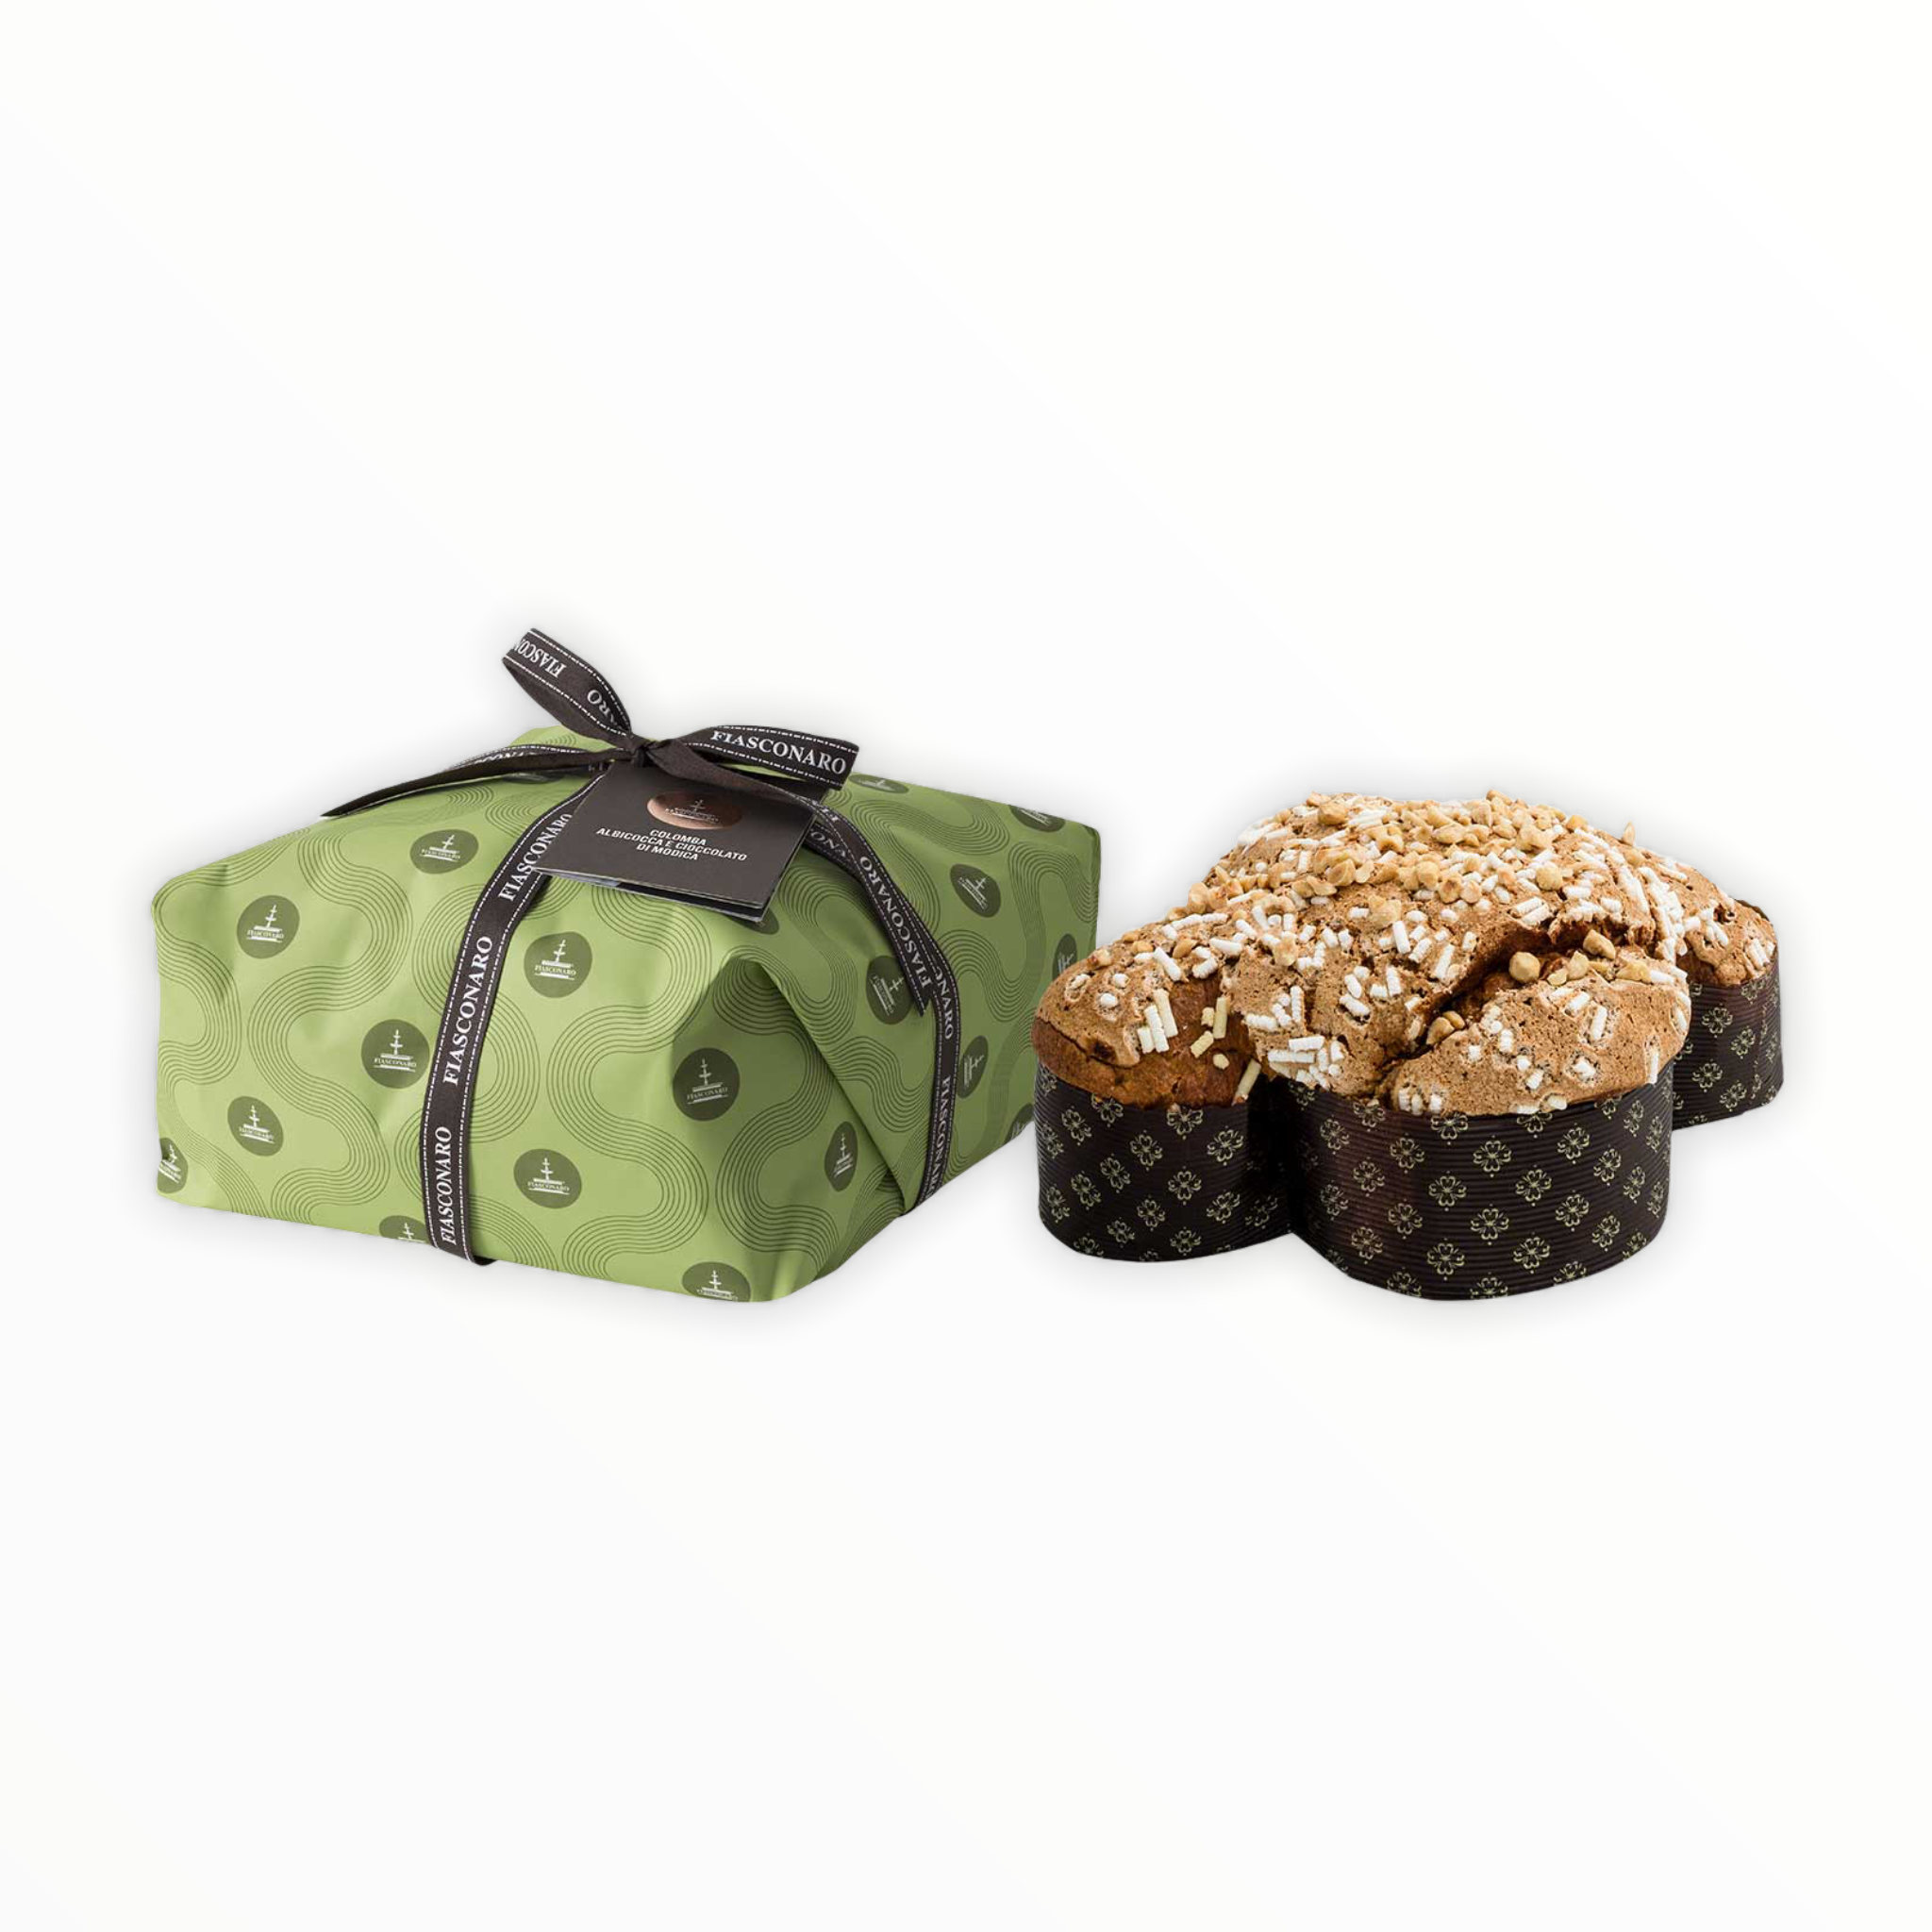 Fiasconaro Colomba with Apricot and Chocolate 2.2lb